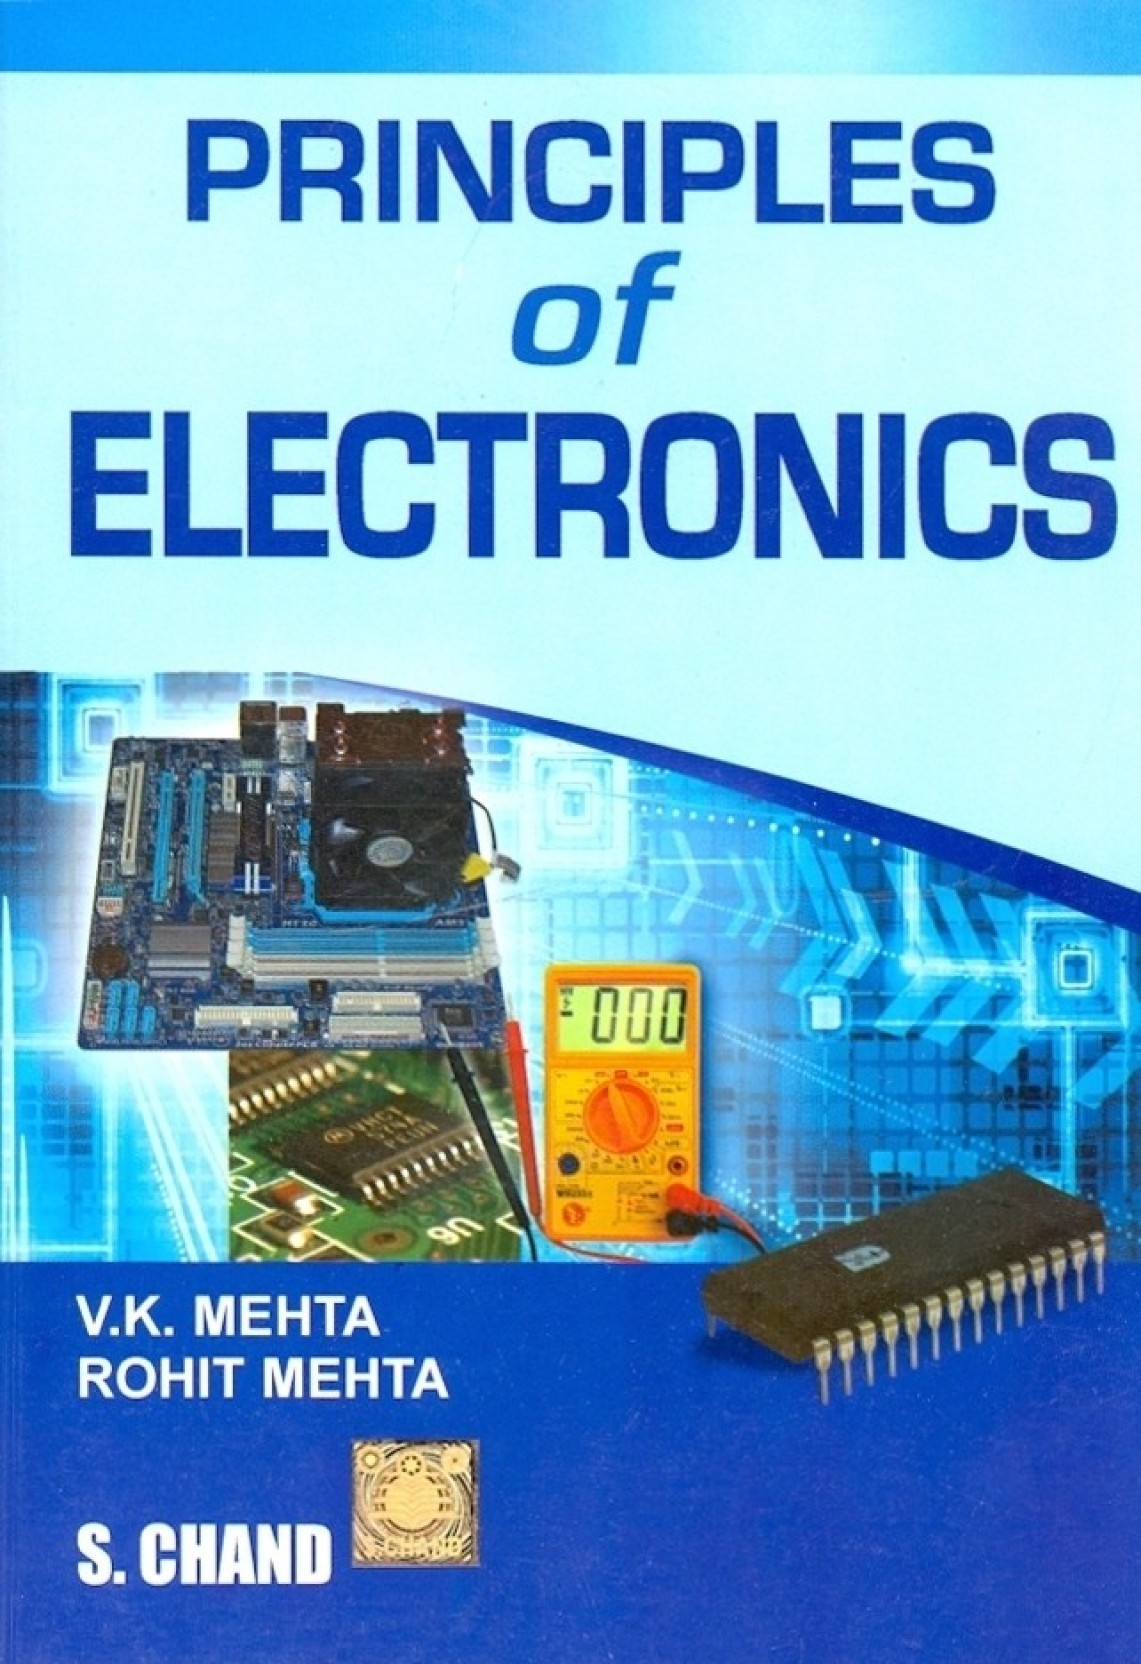 Principles Of Electronics Buy By V K Physics Practical Electrical And Electronic Circuits Revision 2 Add To Cart